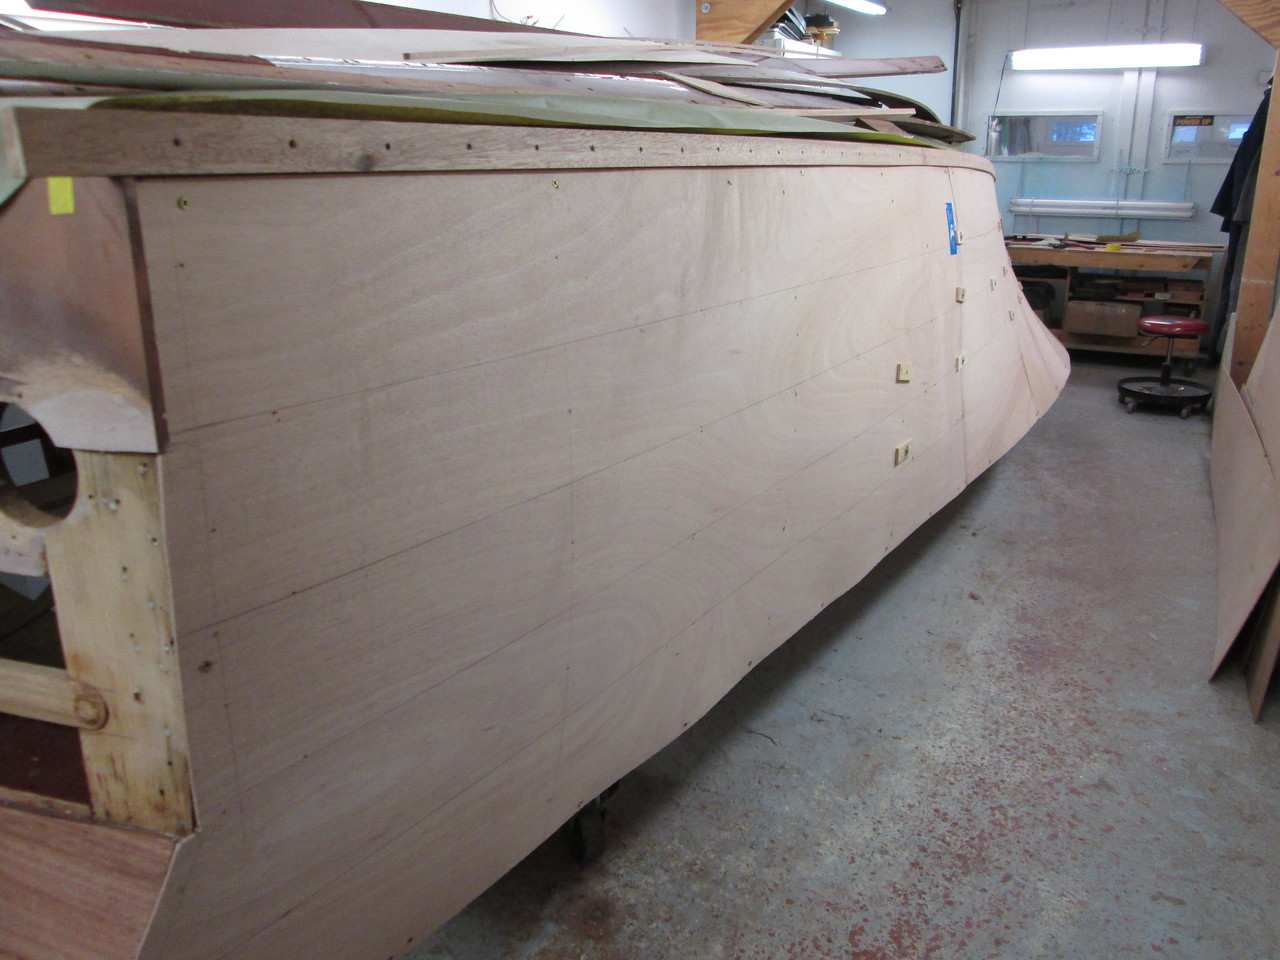 Rear view of he plywood skin fit on the port side.